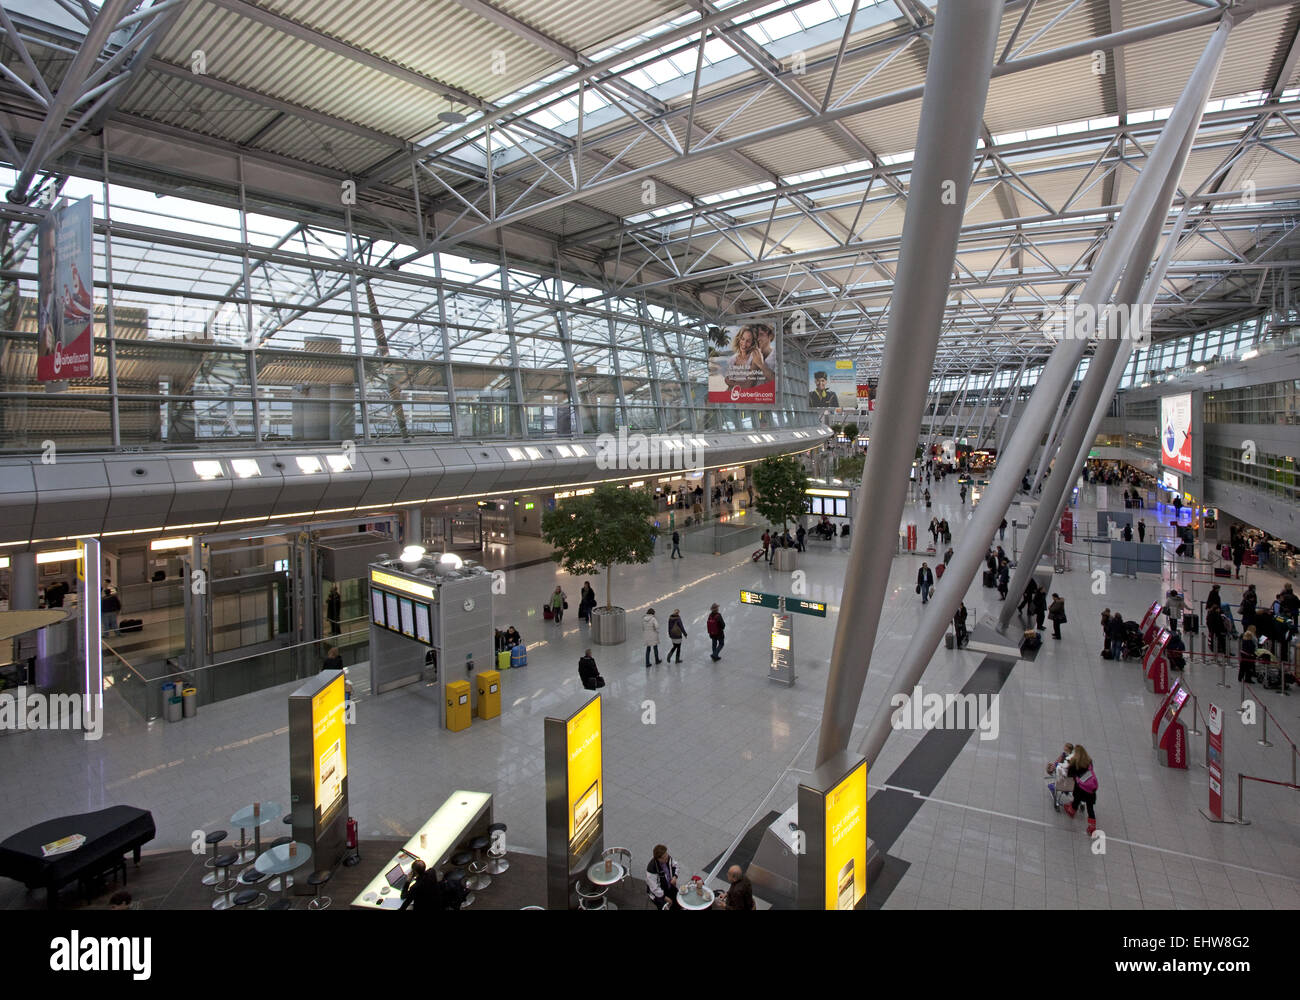 airport dusseldorf architecture stockfotos airport dusseldorf architecture bilder alamy. Black Bedroom Furniture Sets. Home Design Ideas